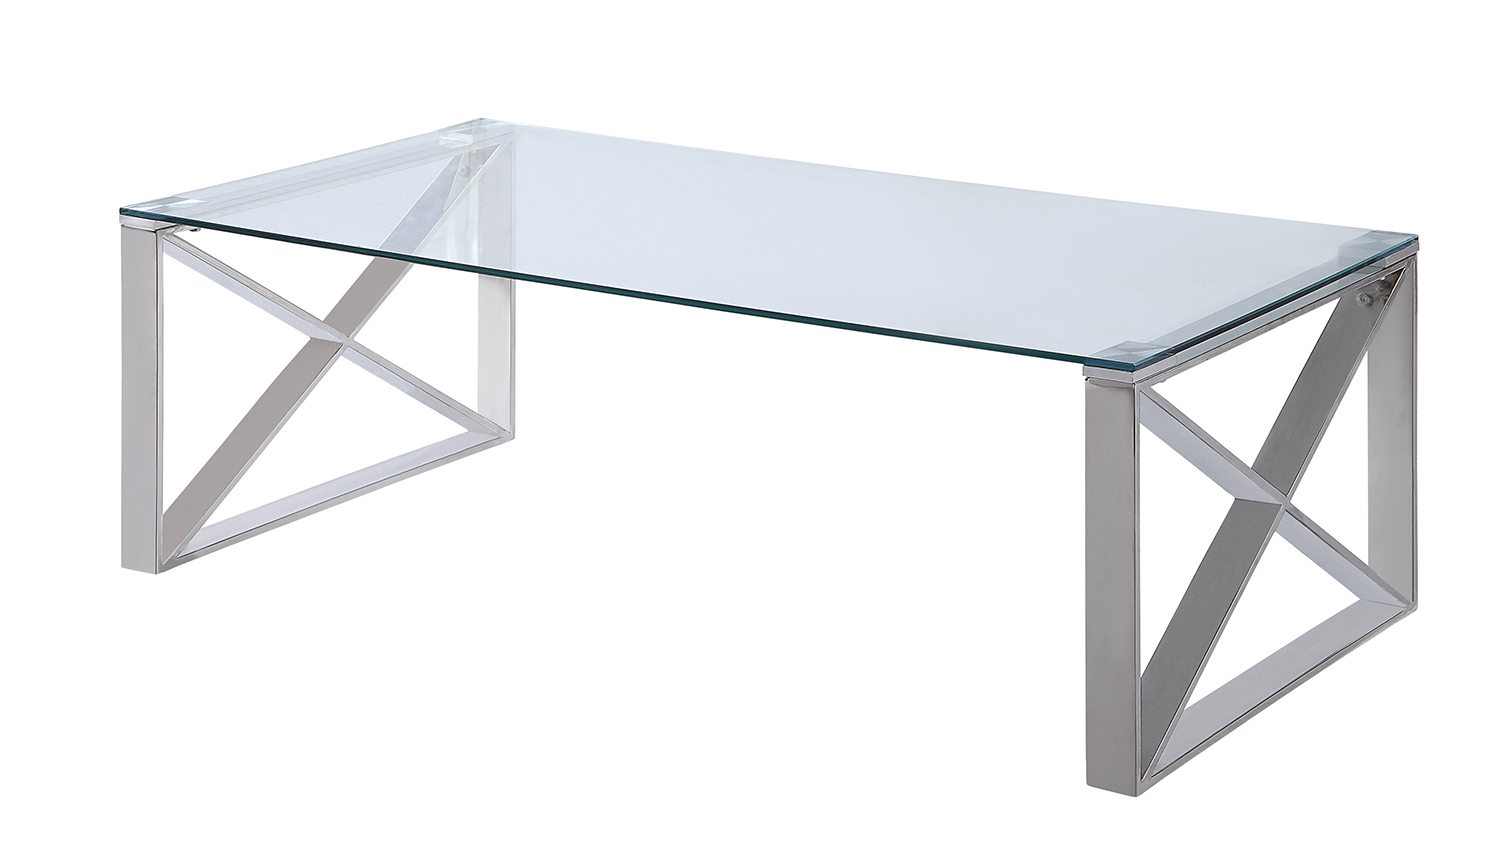 Homelegance Rush Cocktail Table with Glass Top - Polished Chrome